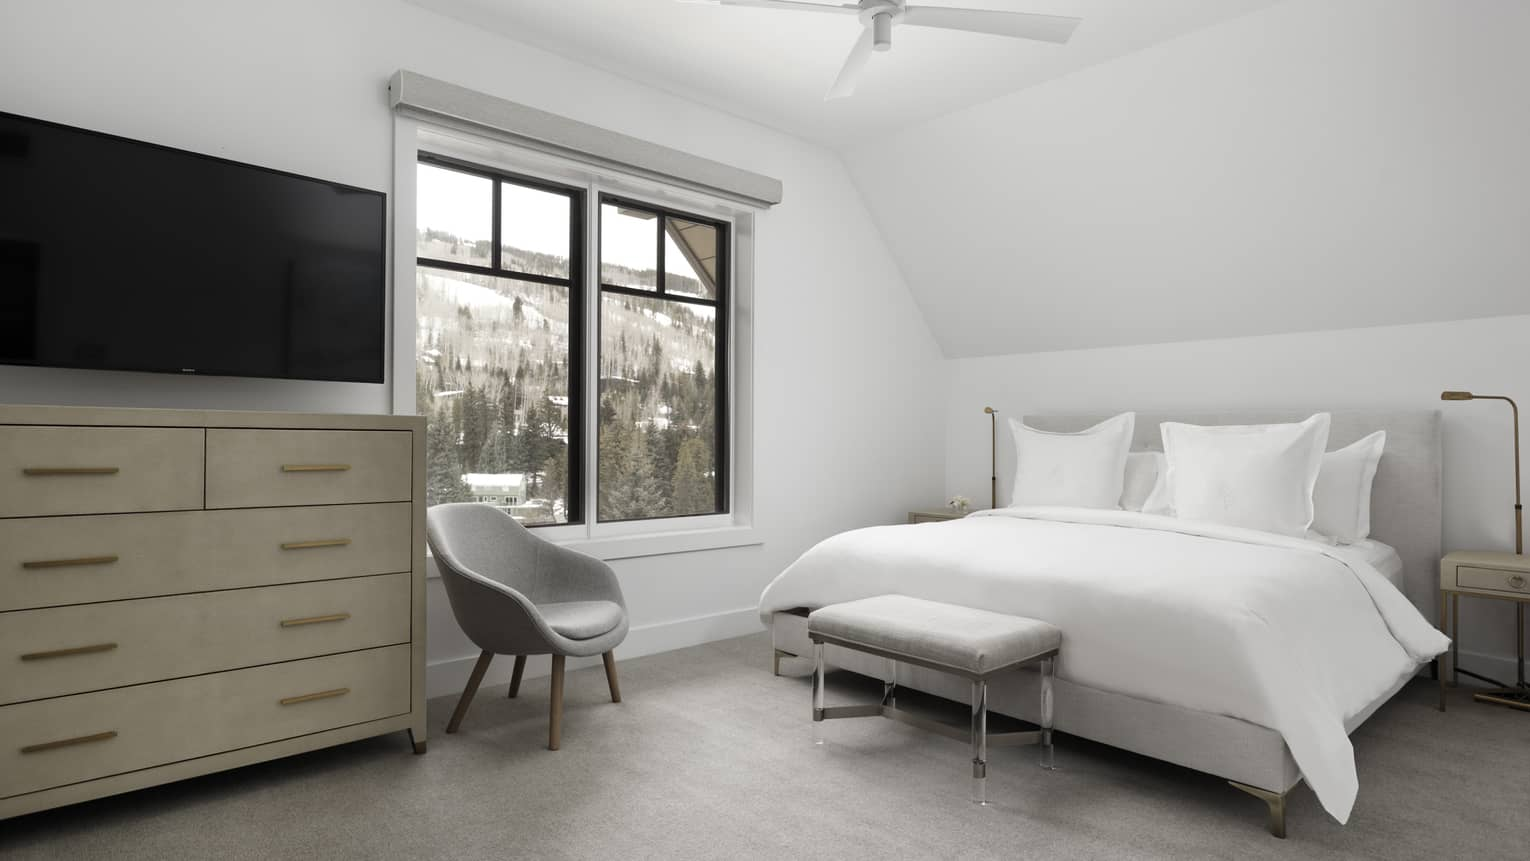 Bedroom with white walls, white king bed, light grey chair, dresser, window